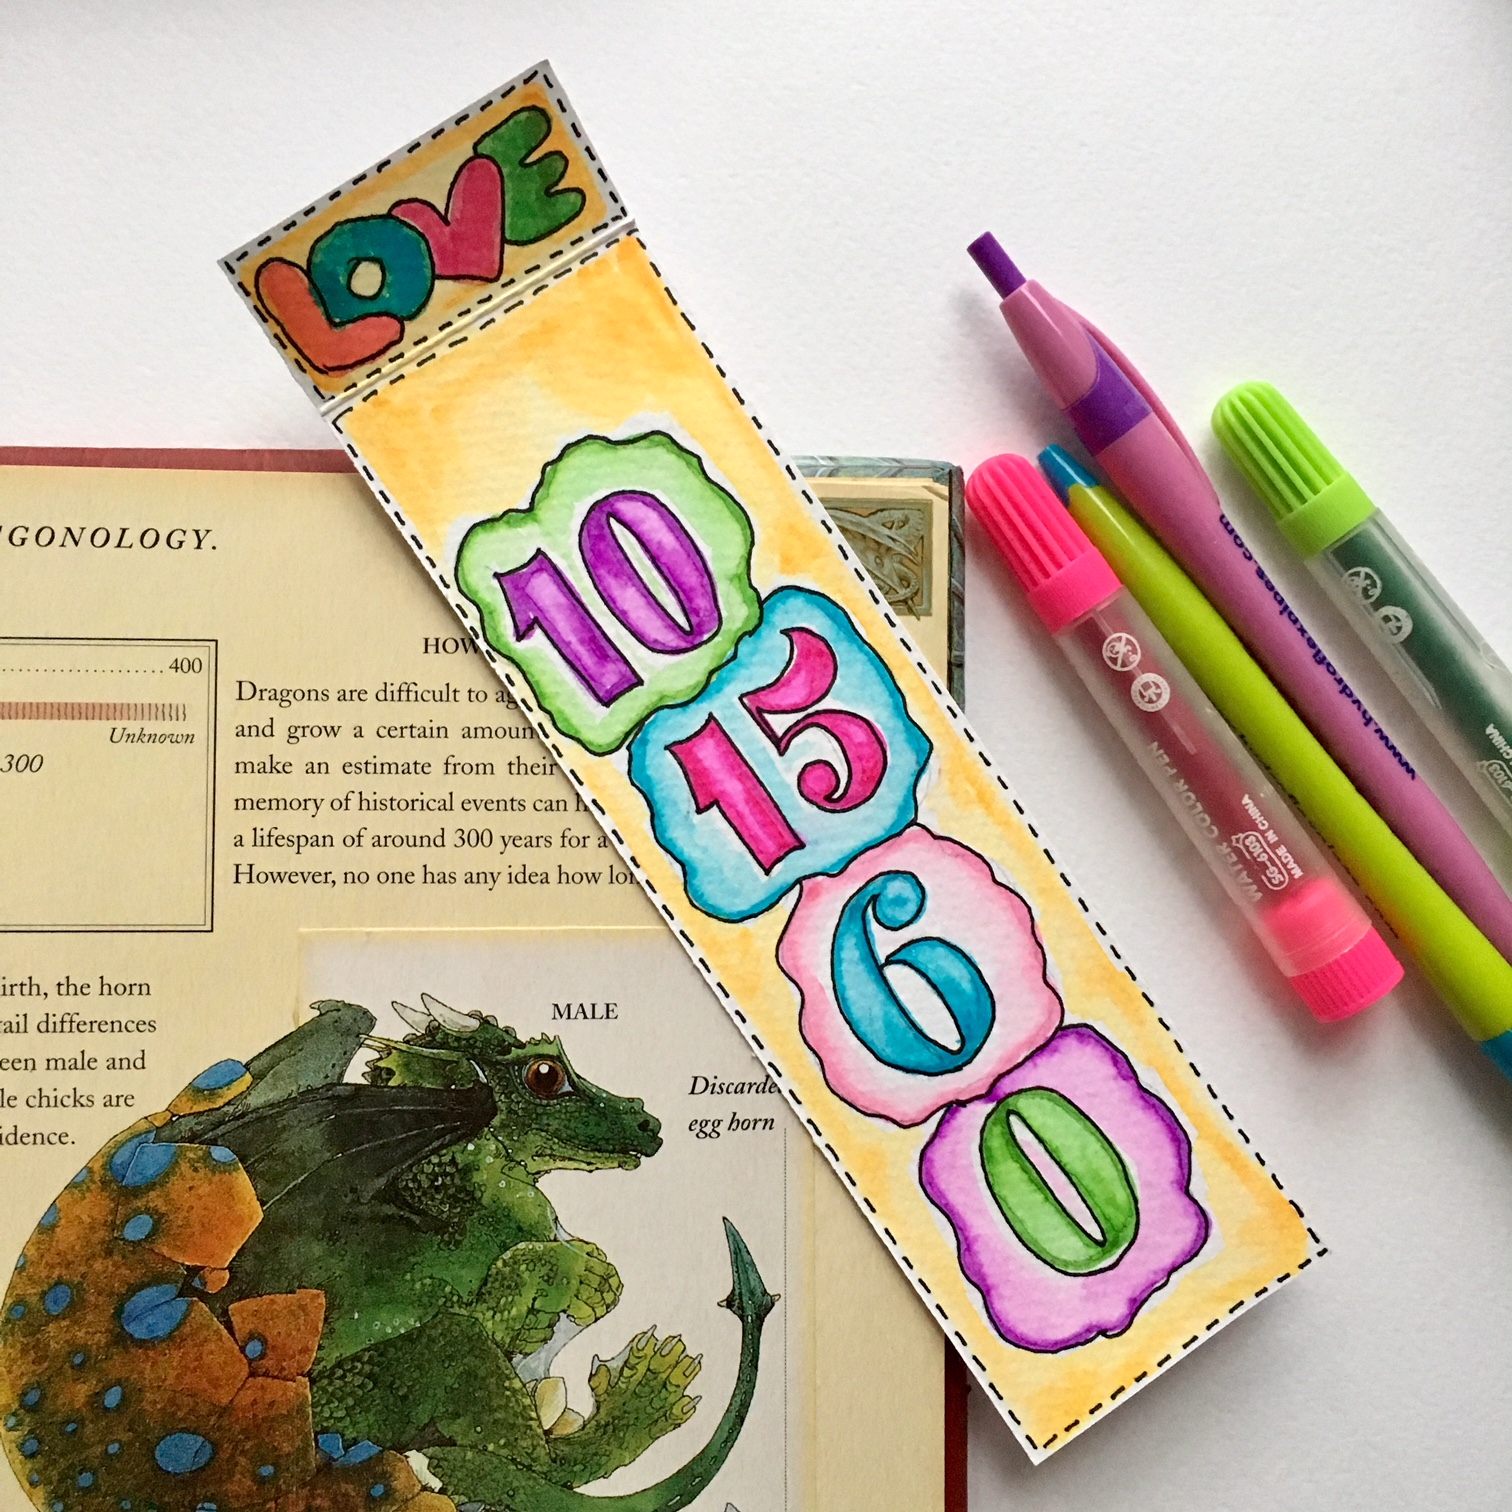 handmade bookmarks with the answers of some sums